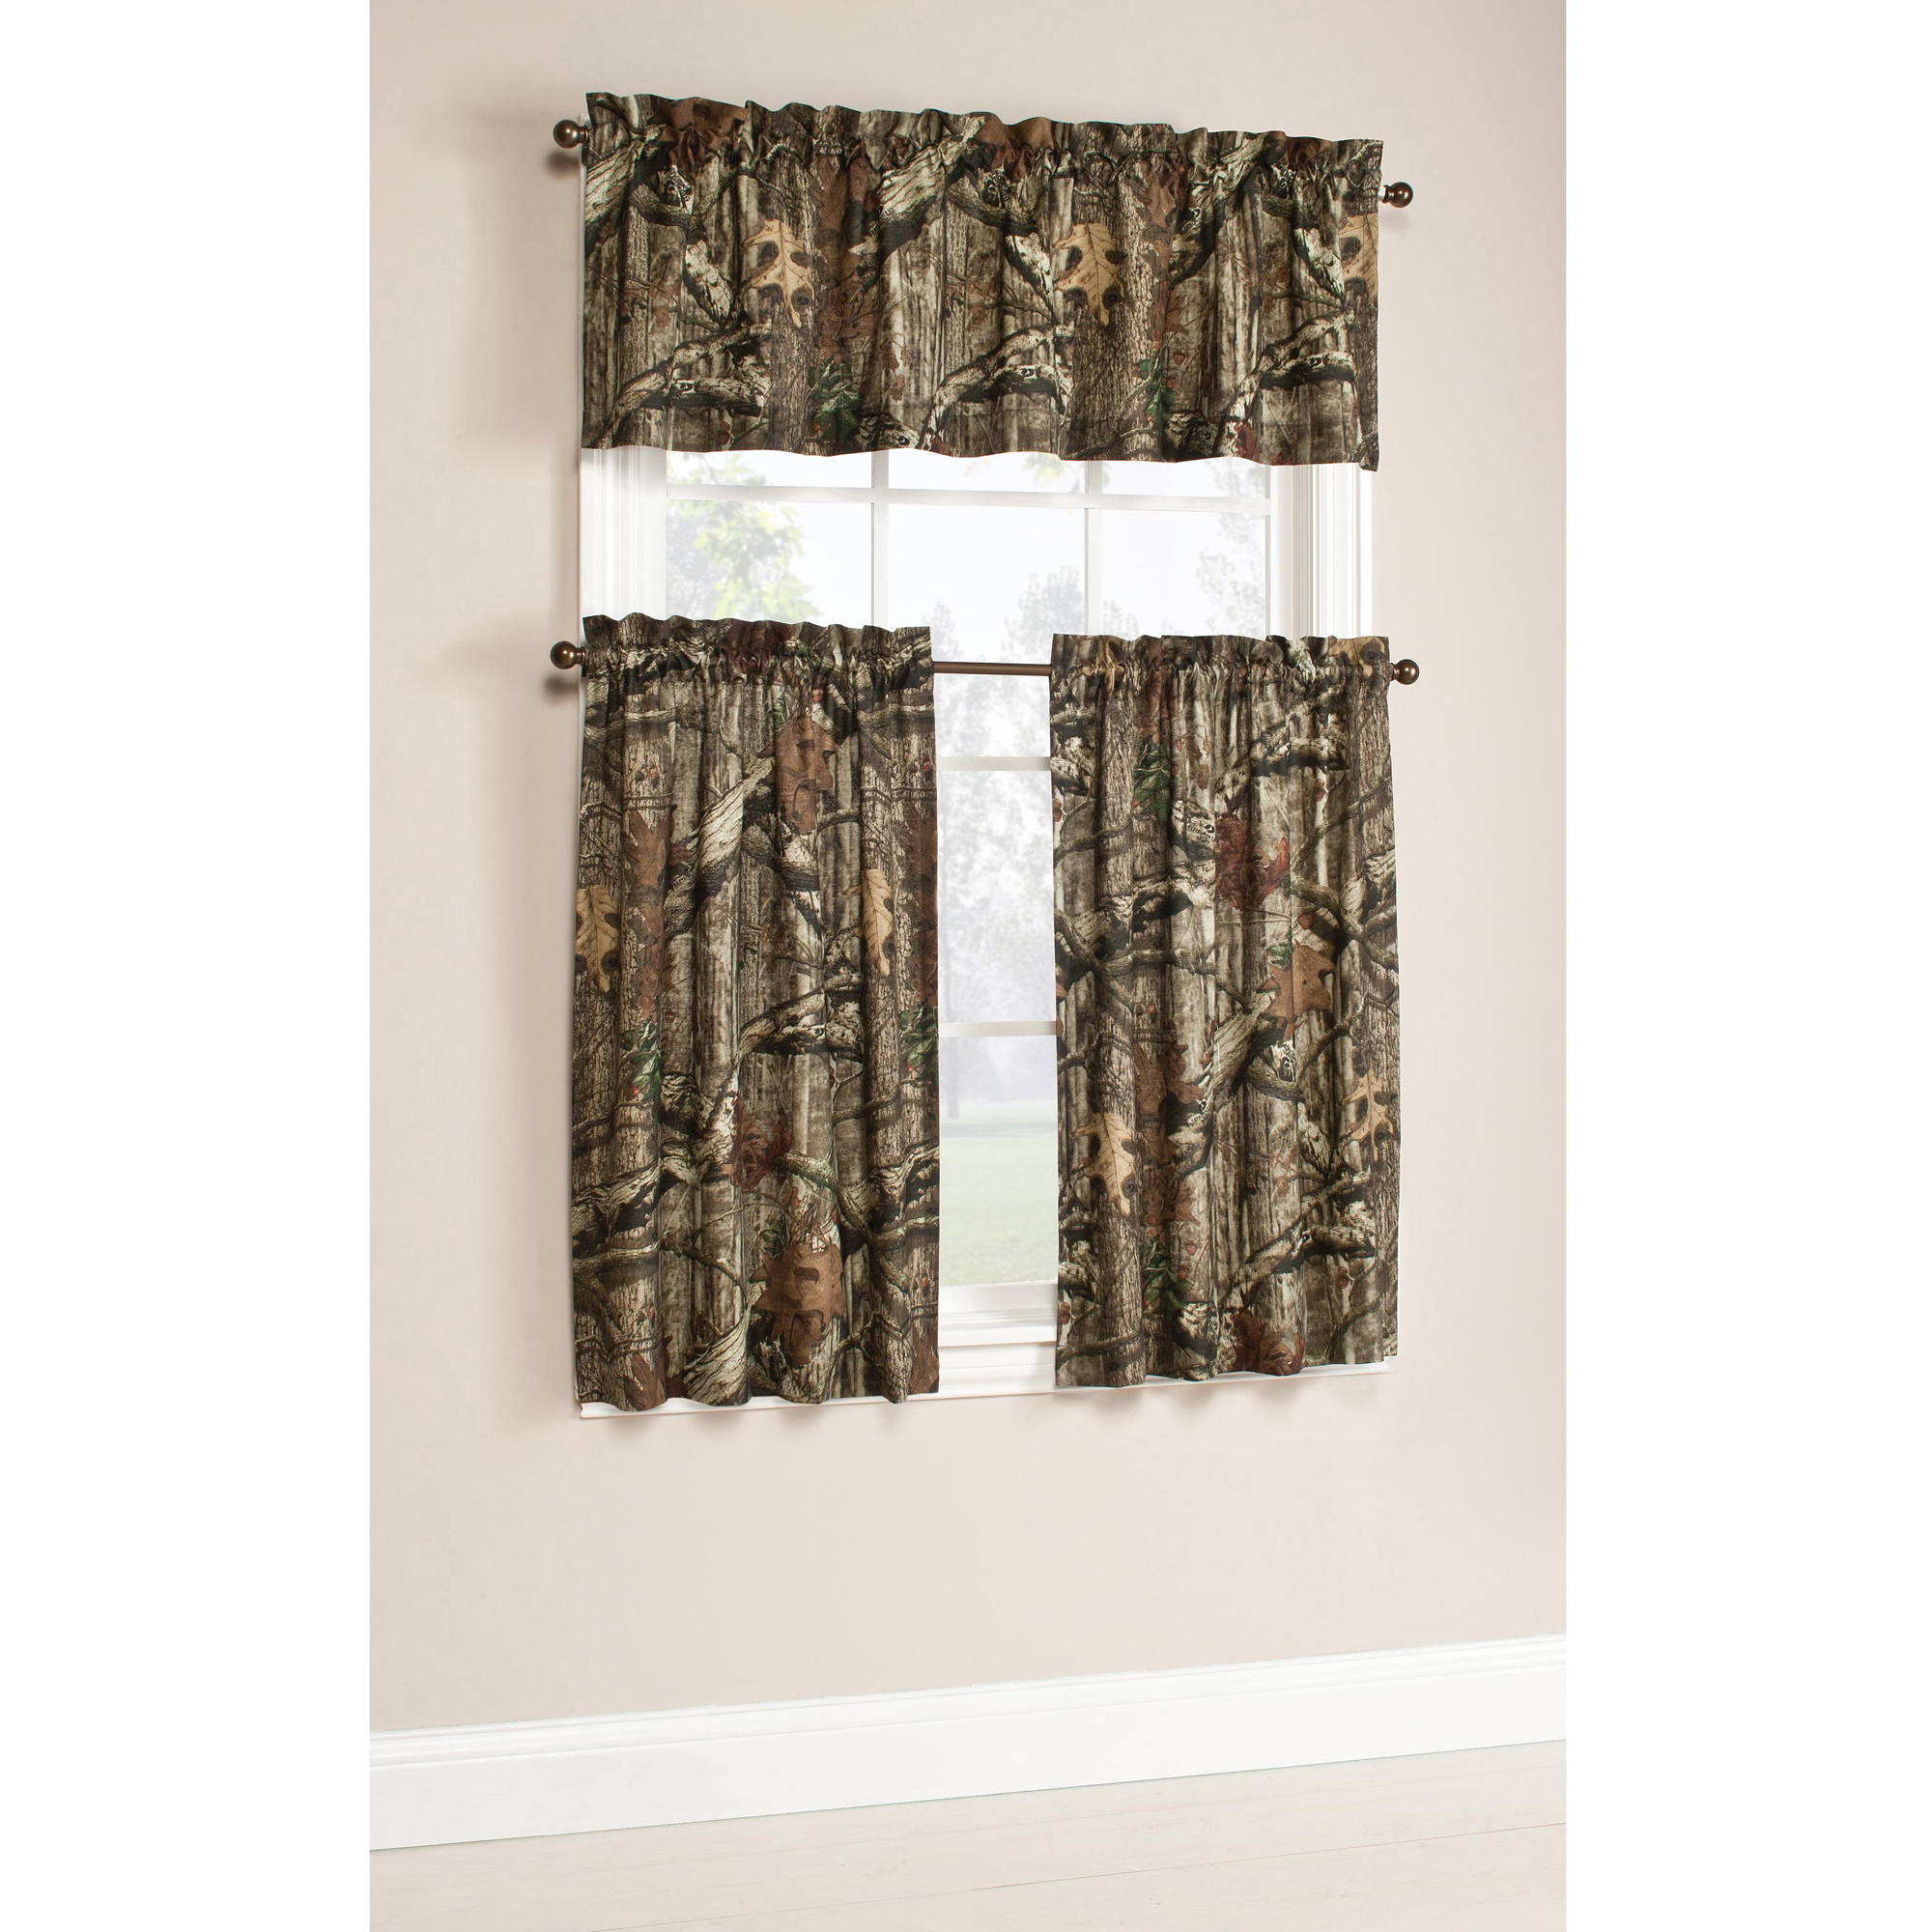 Mossy Oak Break-Up Infinity Camouflage Print Window Kitchen Curtains, Set of 2 or Valance